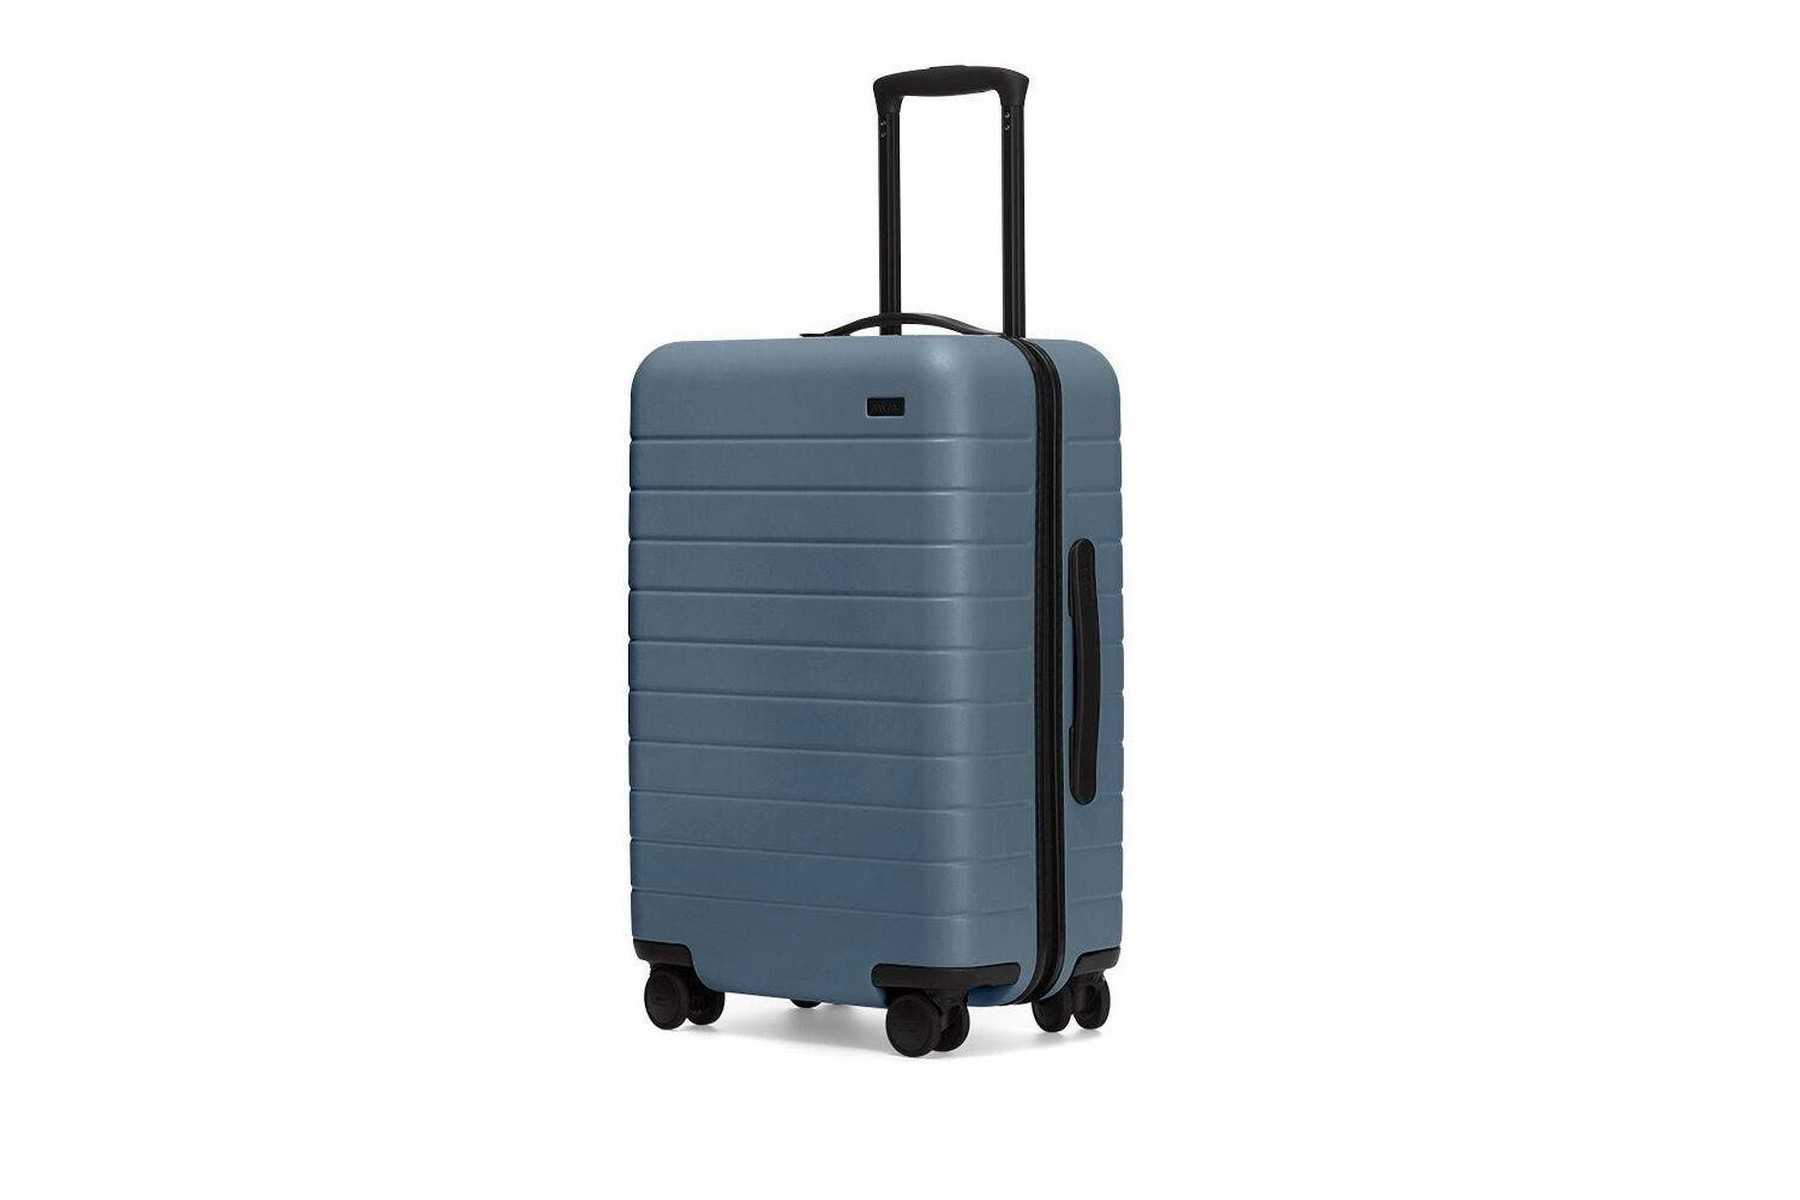 The Best Luggage For 2020